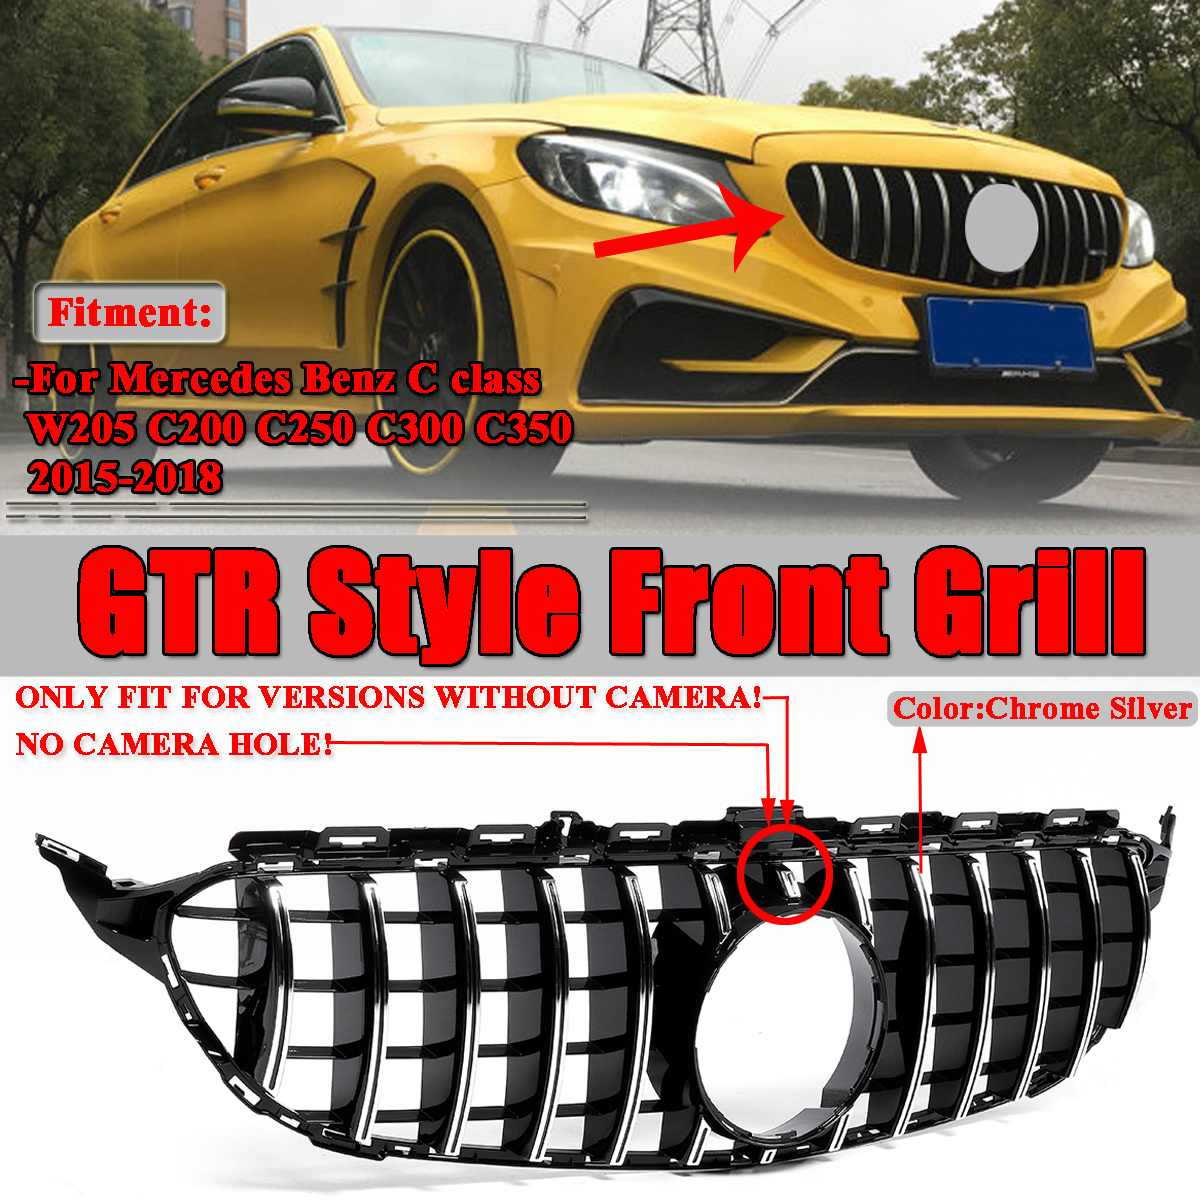 W205 GT R GTR For AMG Grill Grille Car Front Bumper Mesh For <font><b>Mercedes</b></font> For Benz W205 For AMG Look C200 C250 <font><b>C300</b></font> C350 2015-2018 image